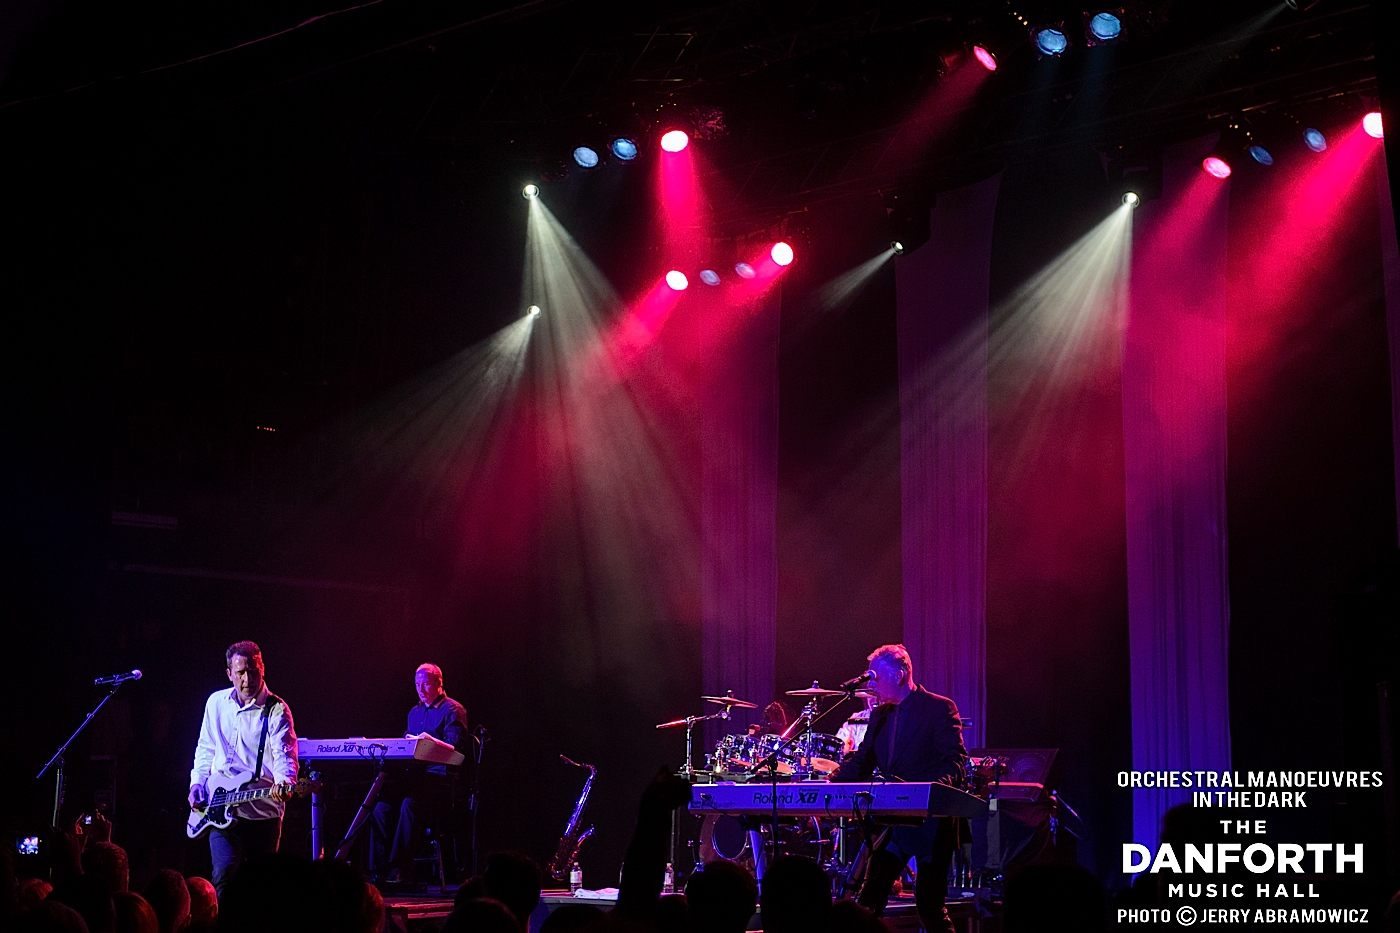 20130711 Orchestral Manoeuvres in the Dark at The Danforth Music Hall 0087